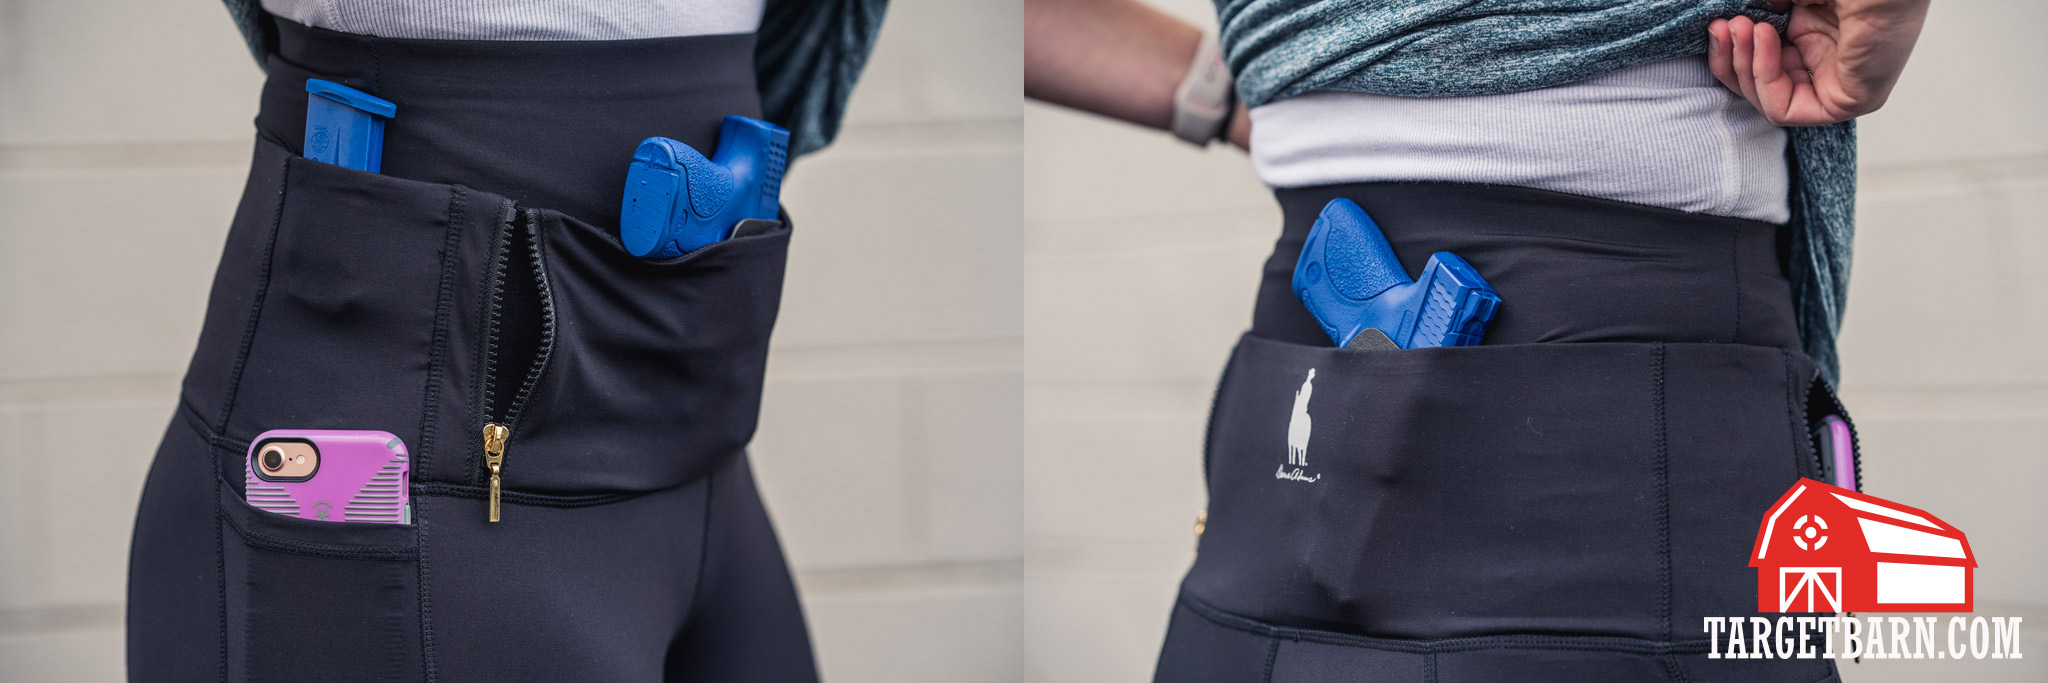 front and back view of Dene Adams Classic Concealed Carry Tactical Leggings with blue guns and magazine holstered